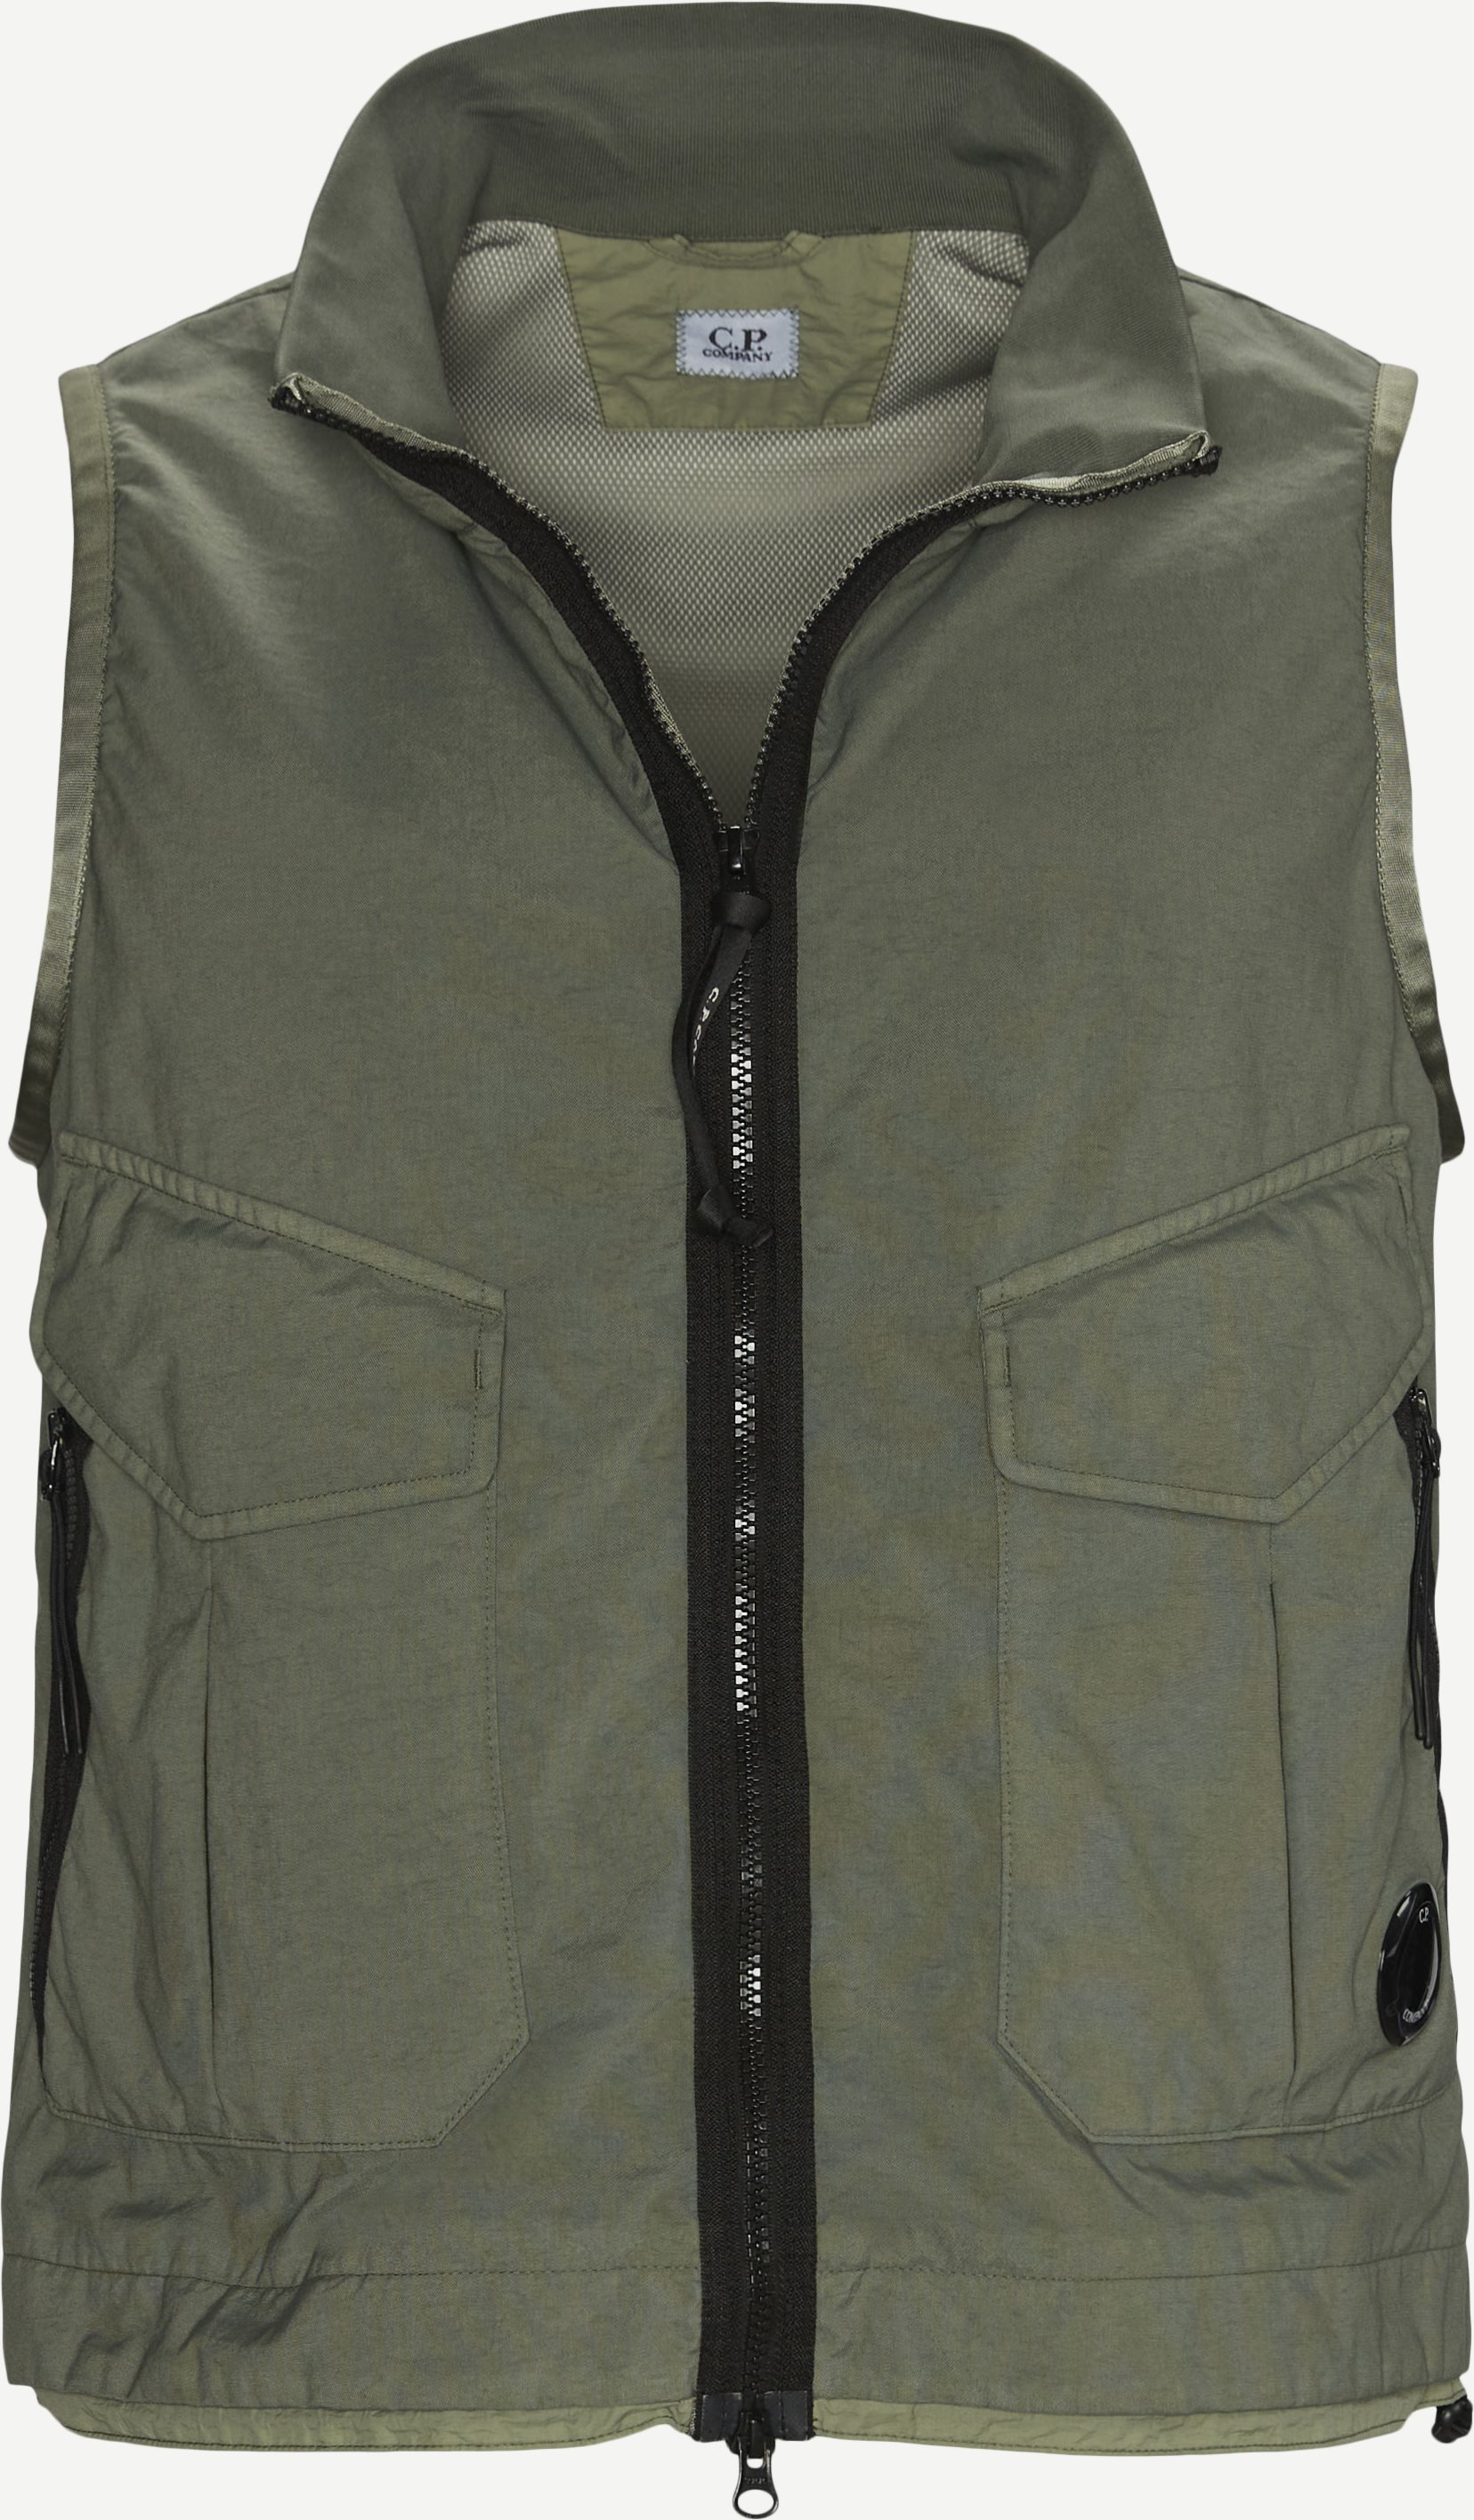 Vests - Regular - Army